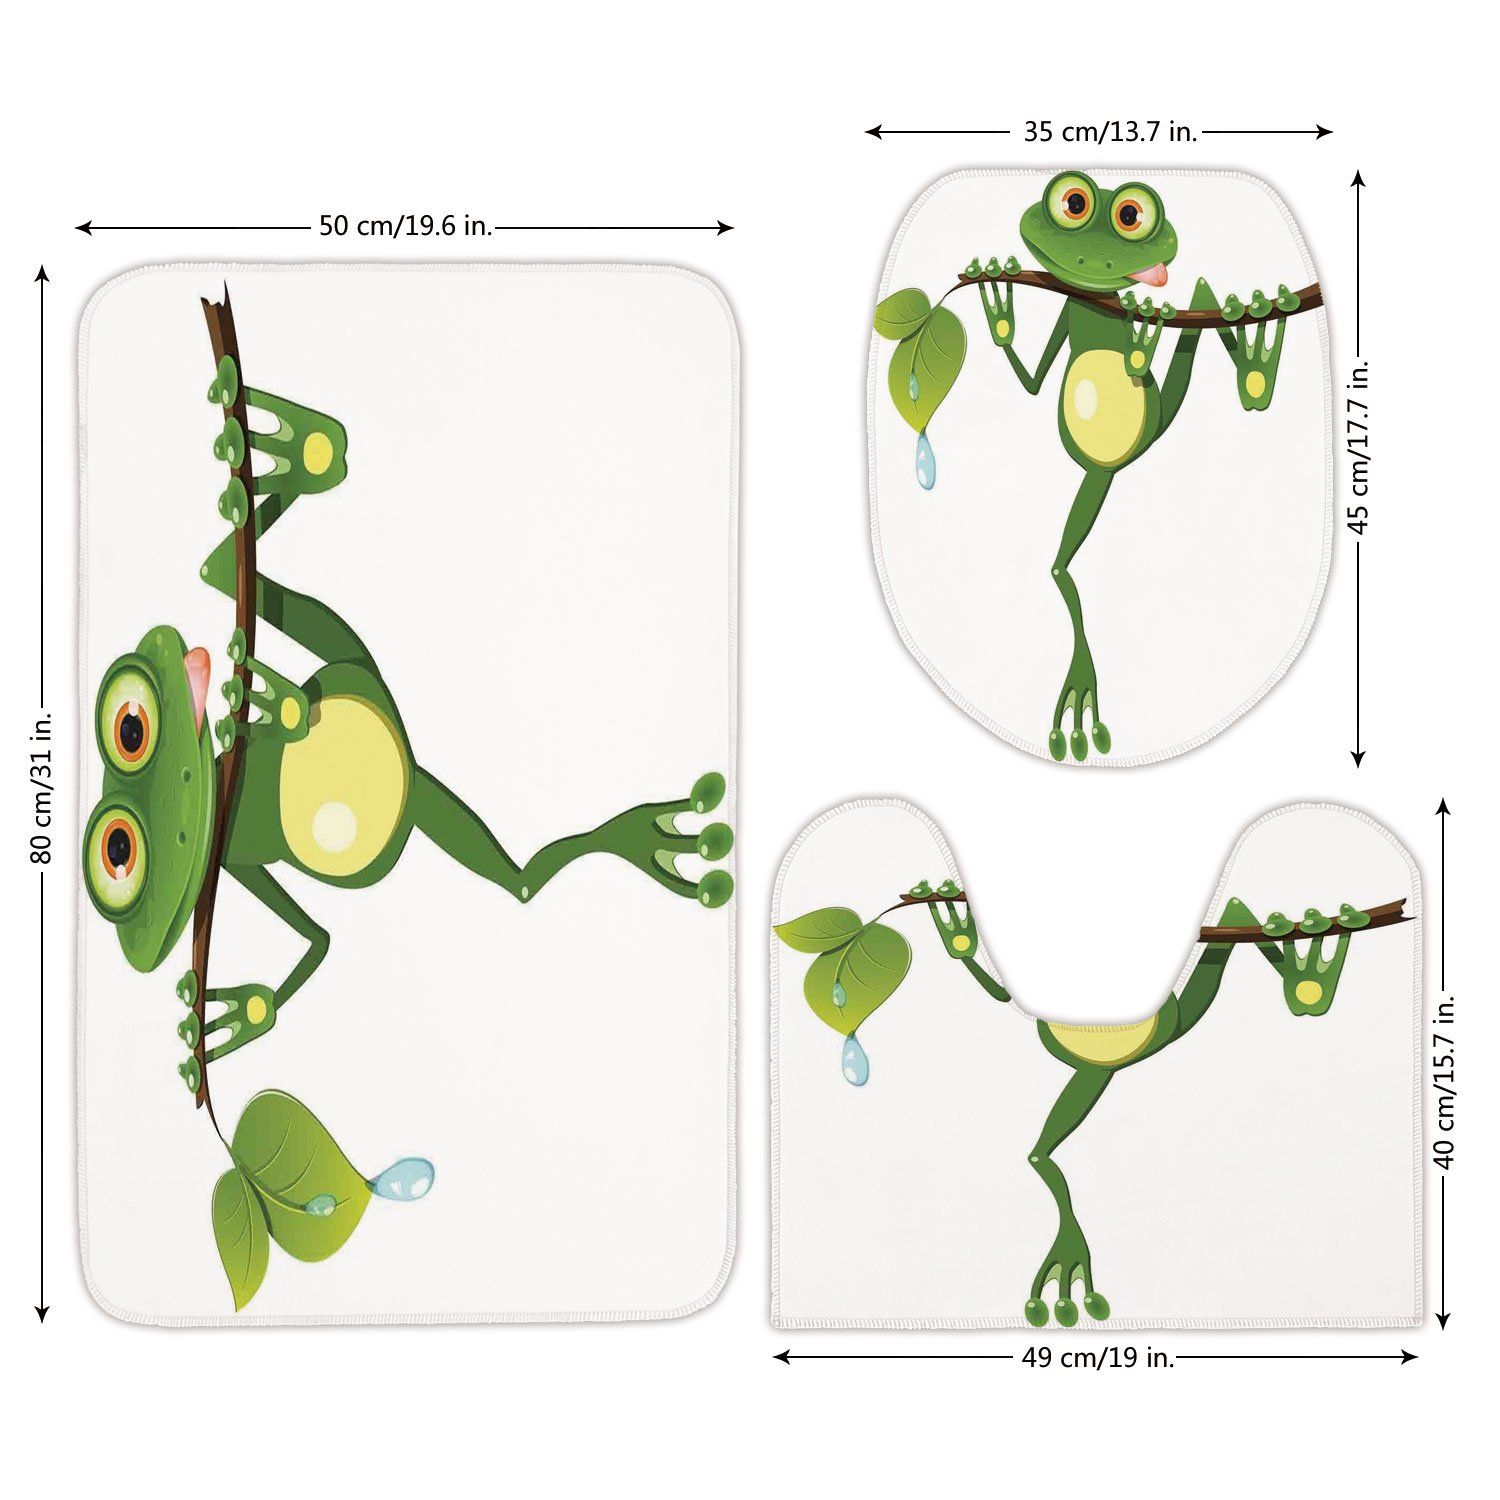 3 Piece Bathroom Mat Set,Animal Decor,Little Frog on Branch of the Tree in Rainforest Nature Jungle Life Artsy Earth,Green White Yellow,Bath Mat,Bathroom Carpet Rug,Non-Slip